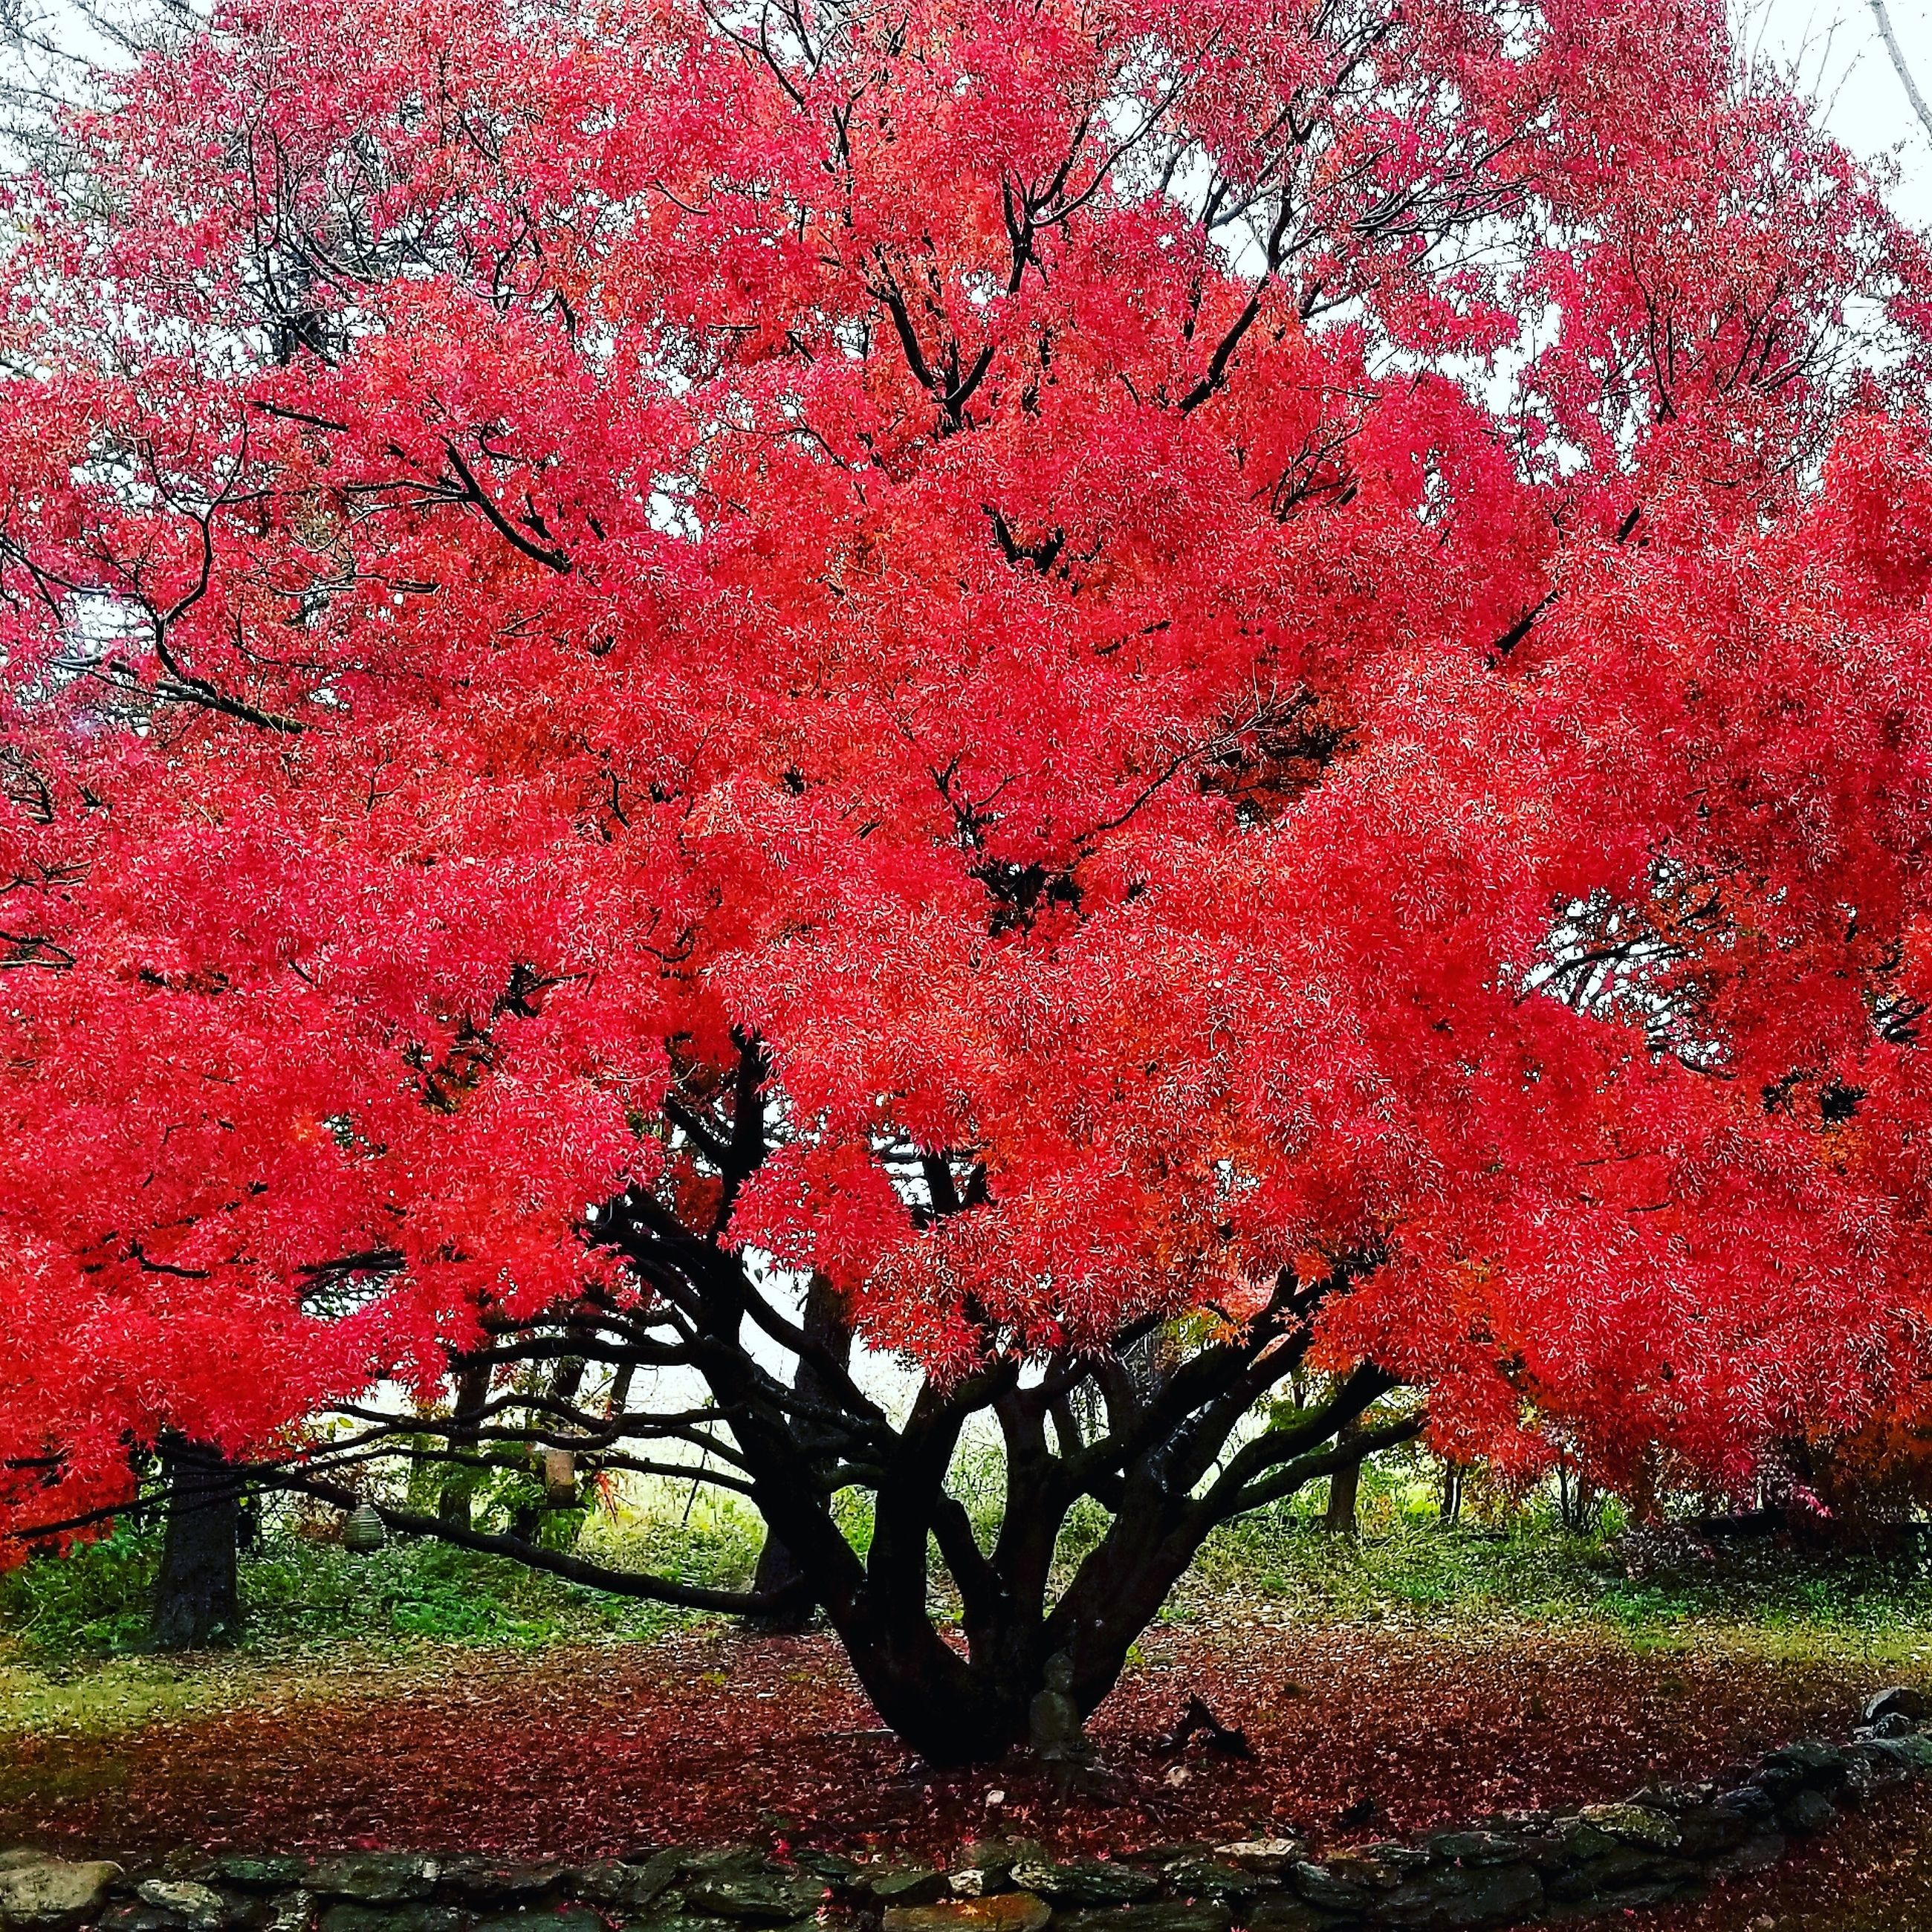 plant, tree, growth, red, autumn, beauty in nature, nature, no people, day, branch, change, park, outdoors, land, tranquility, pink color, park - man made space, field, scenics - nature, tranquil scene